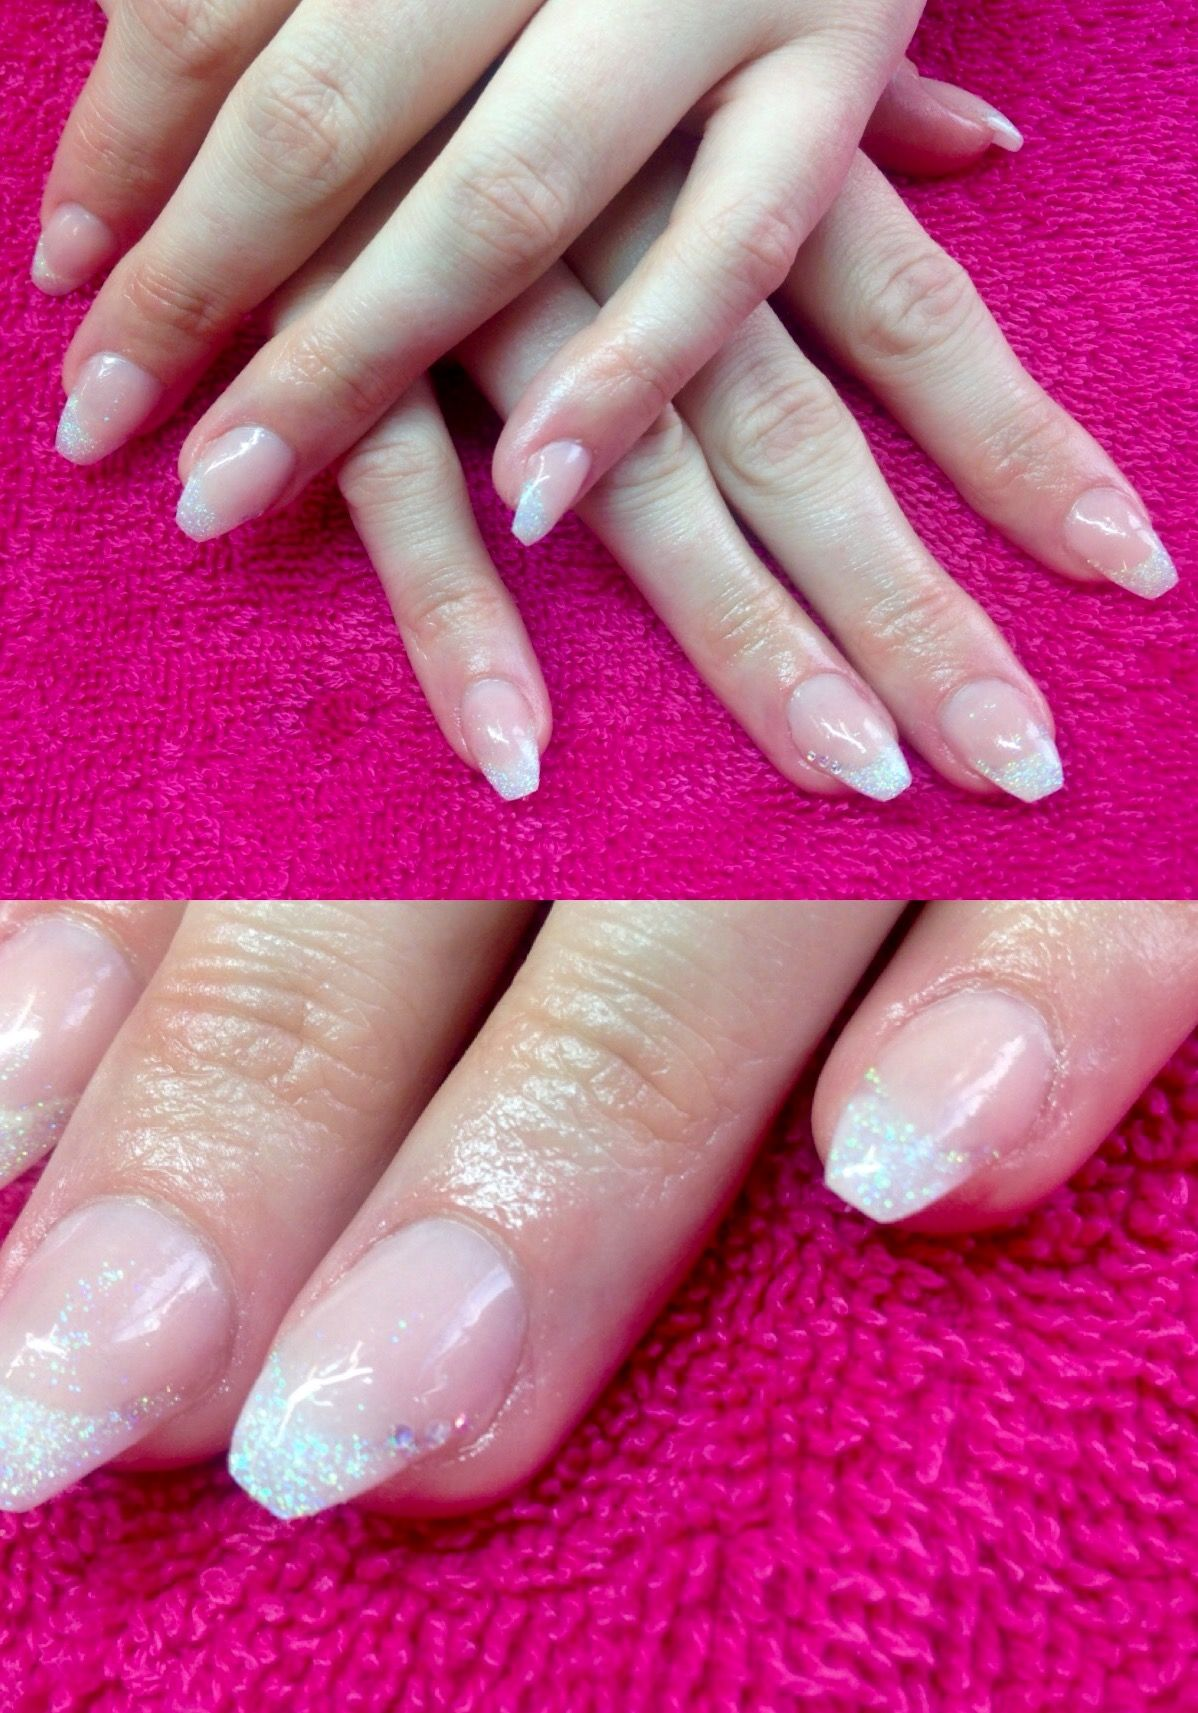 Extended nail bed -pink an white acrylic | Nails by me | Pinterest